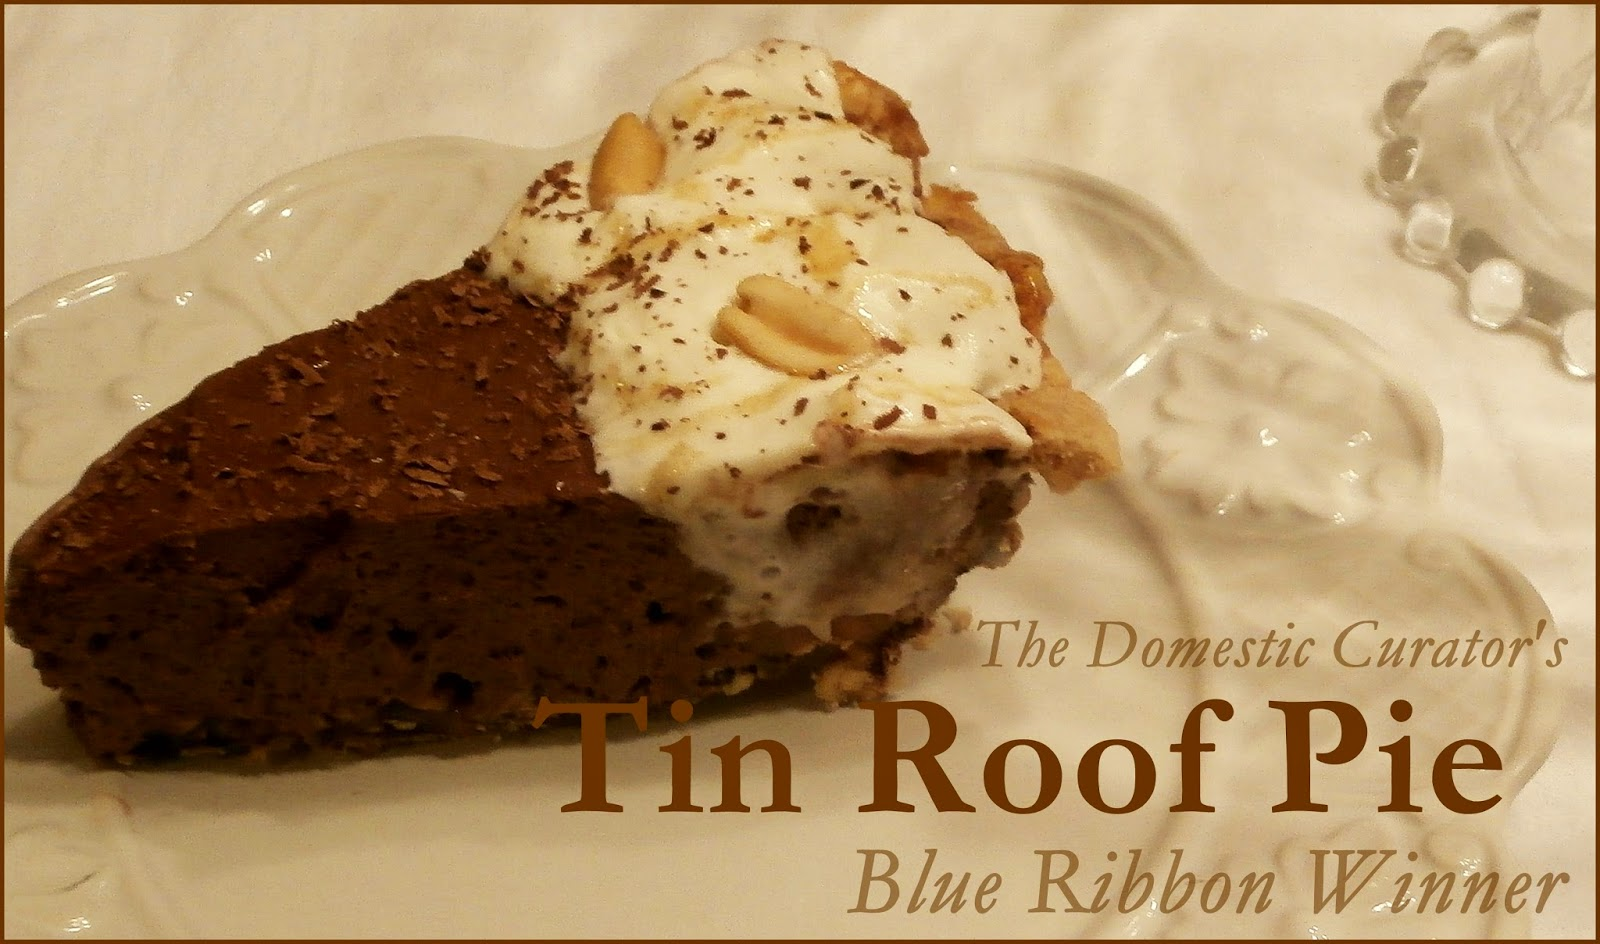 The Domestic Curator Tin Roof Chocolate Pie